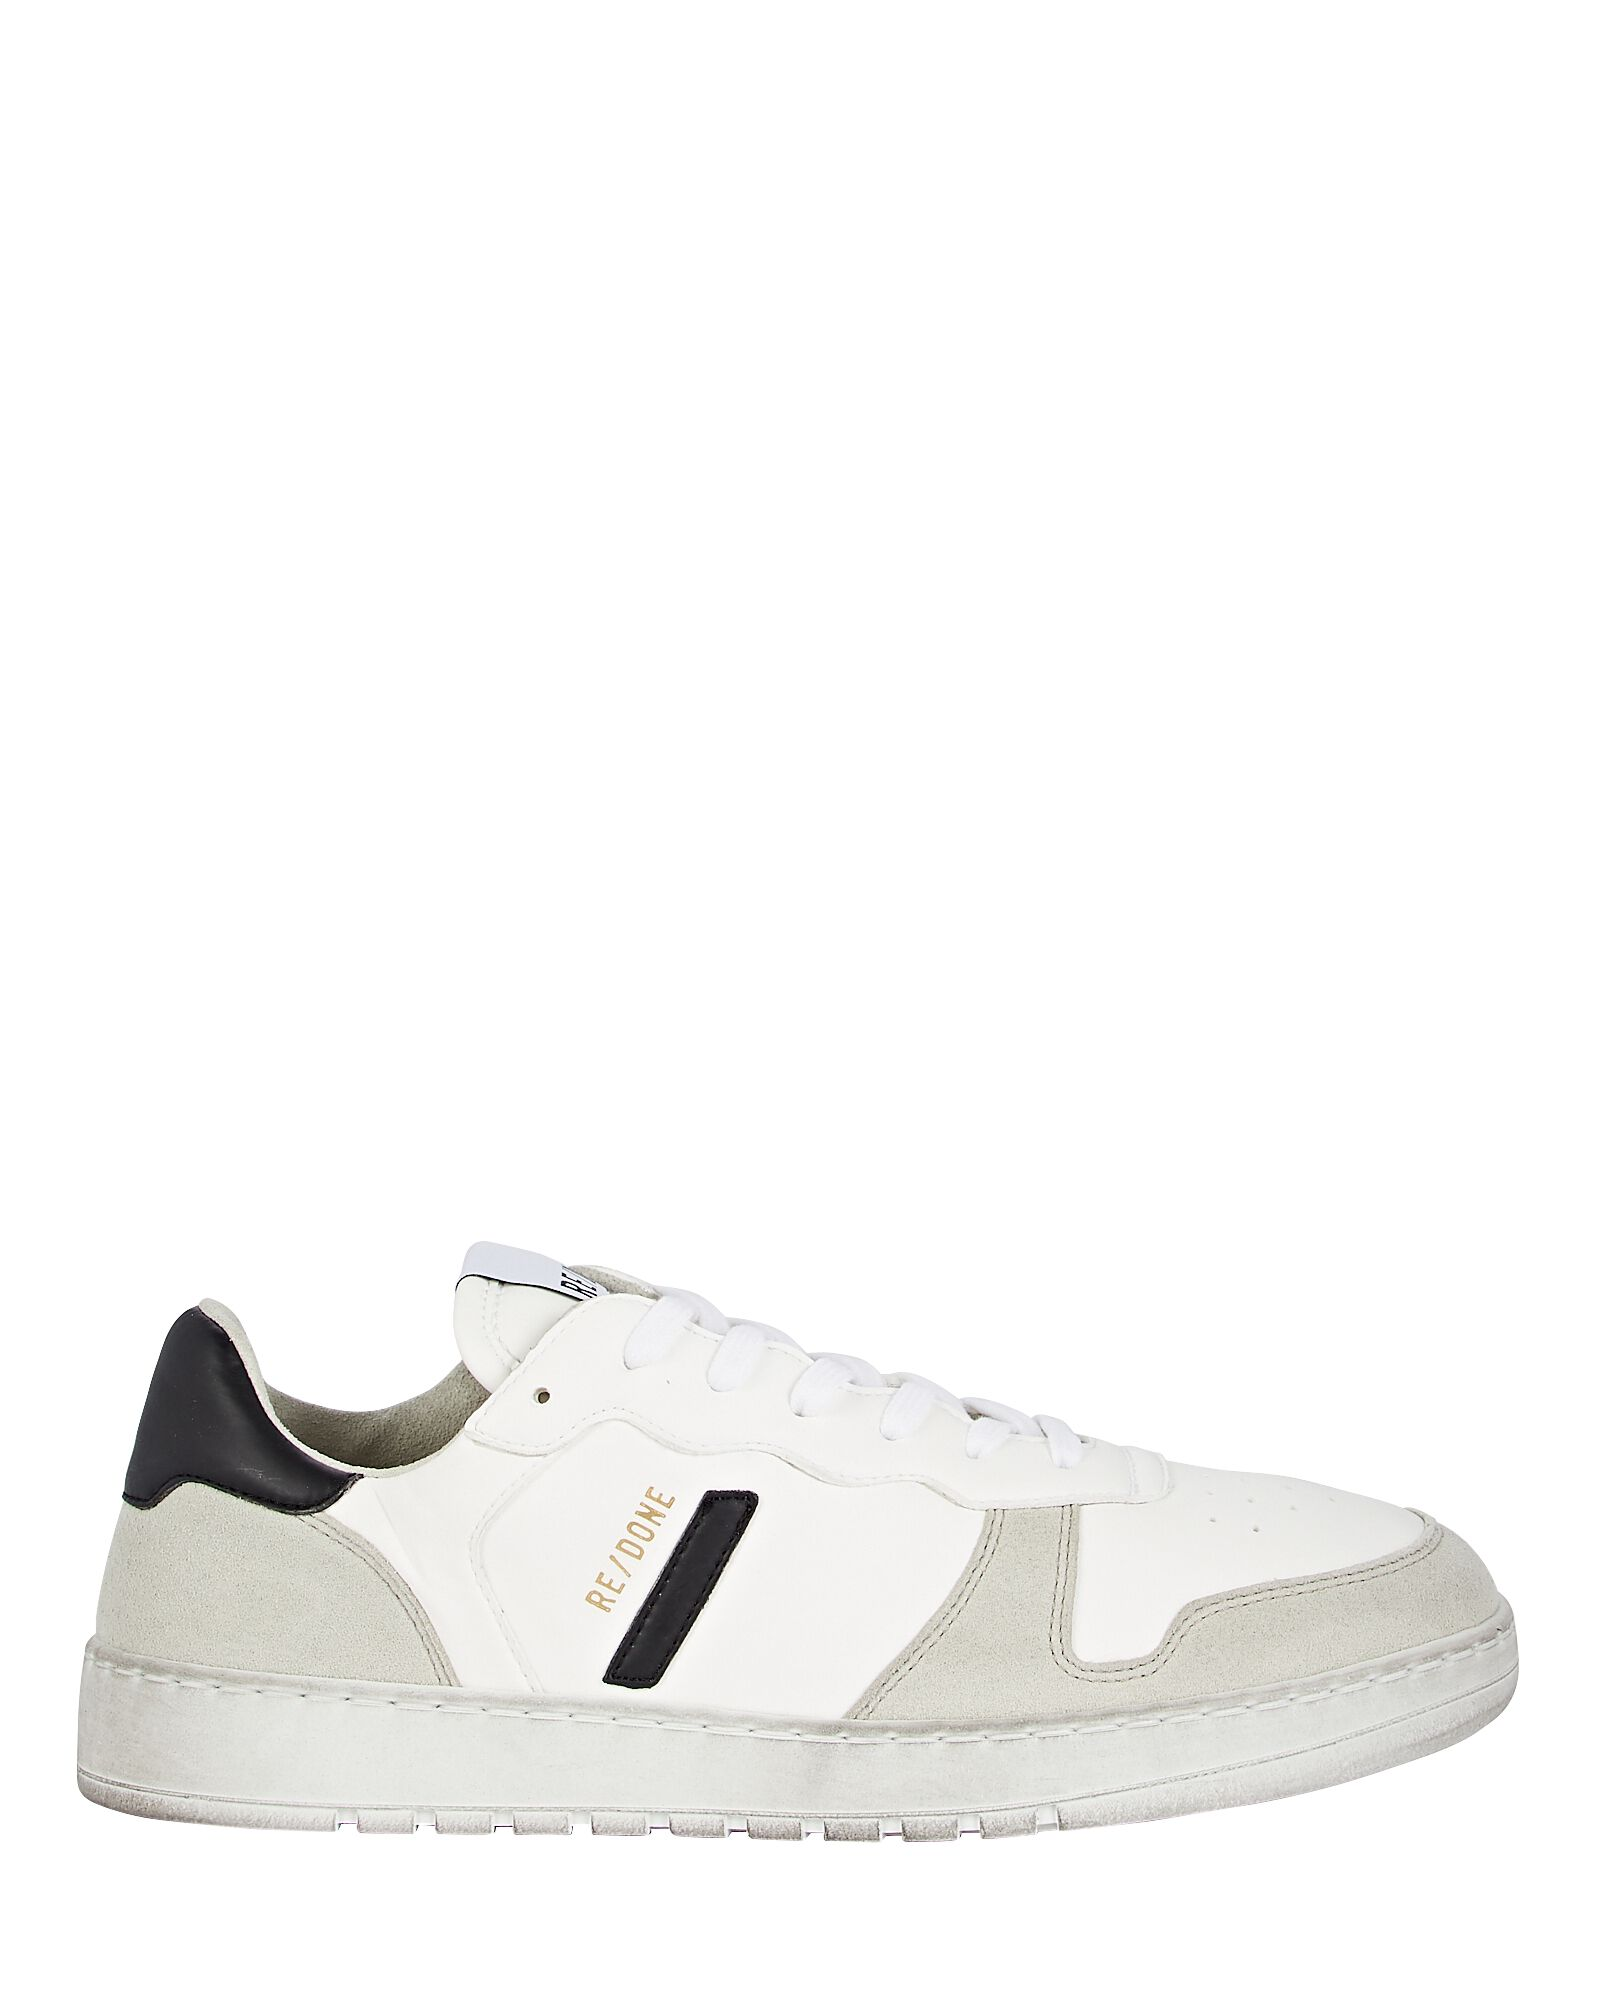 80s Sustainable Basketball Sneakers, WHITE, hi-res